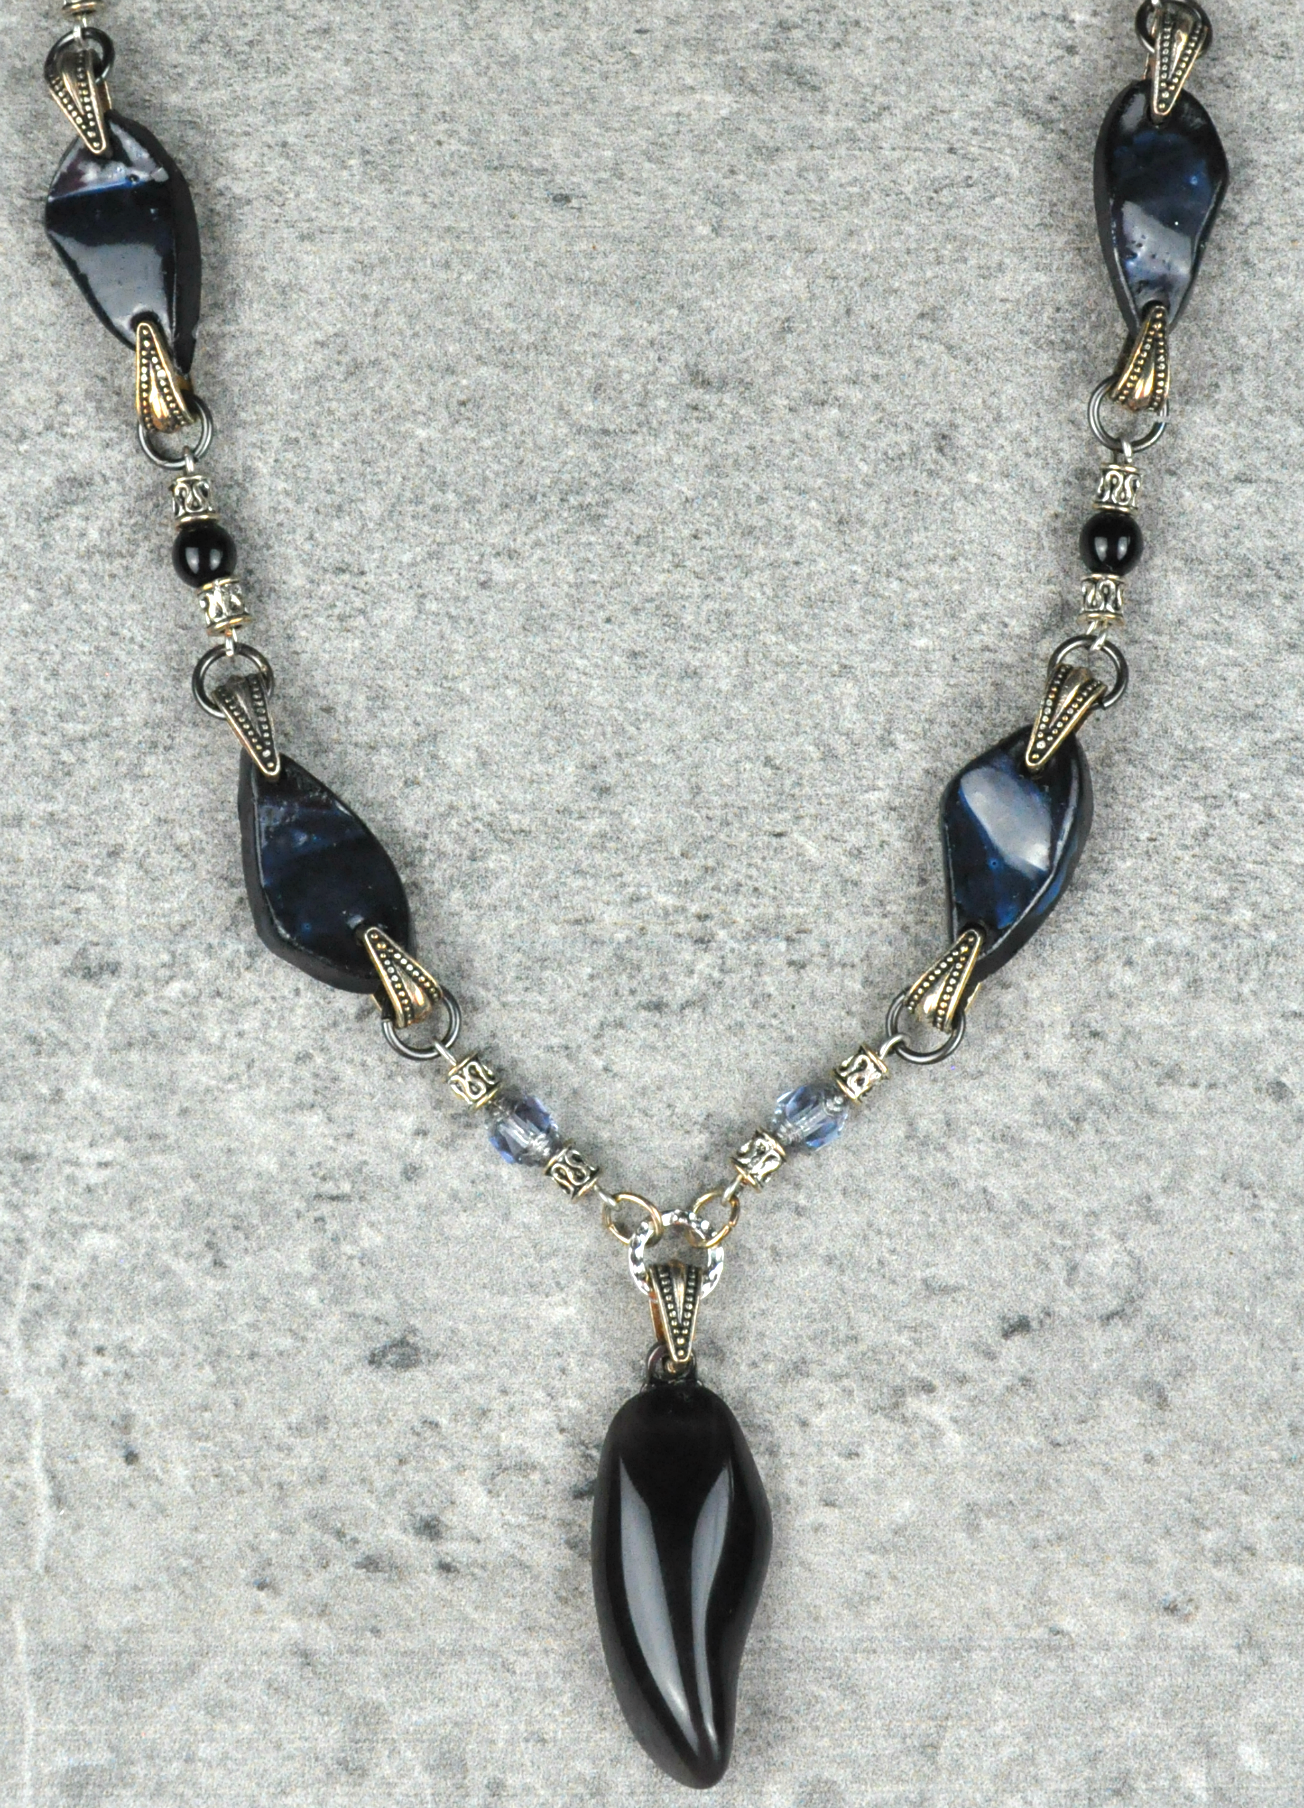 Obsidian-and-clay-necklace2.png